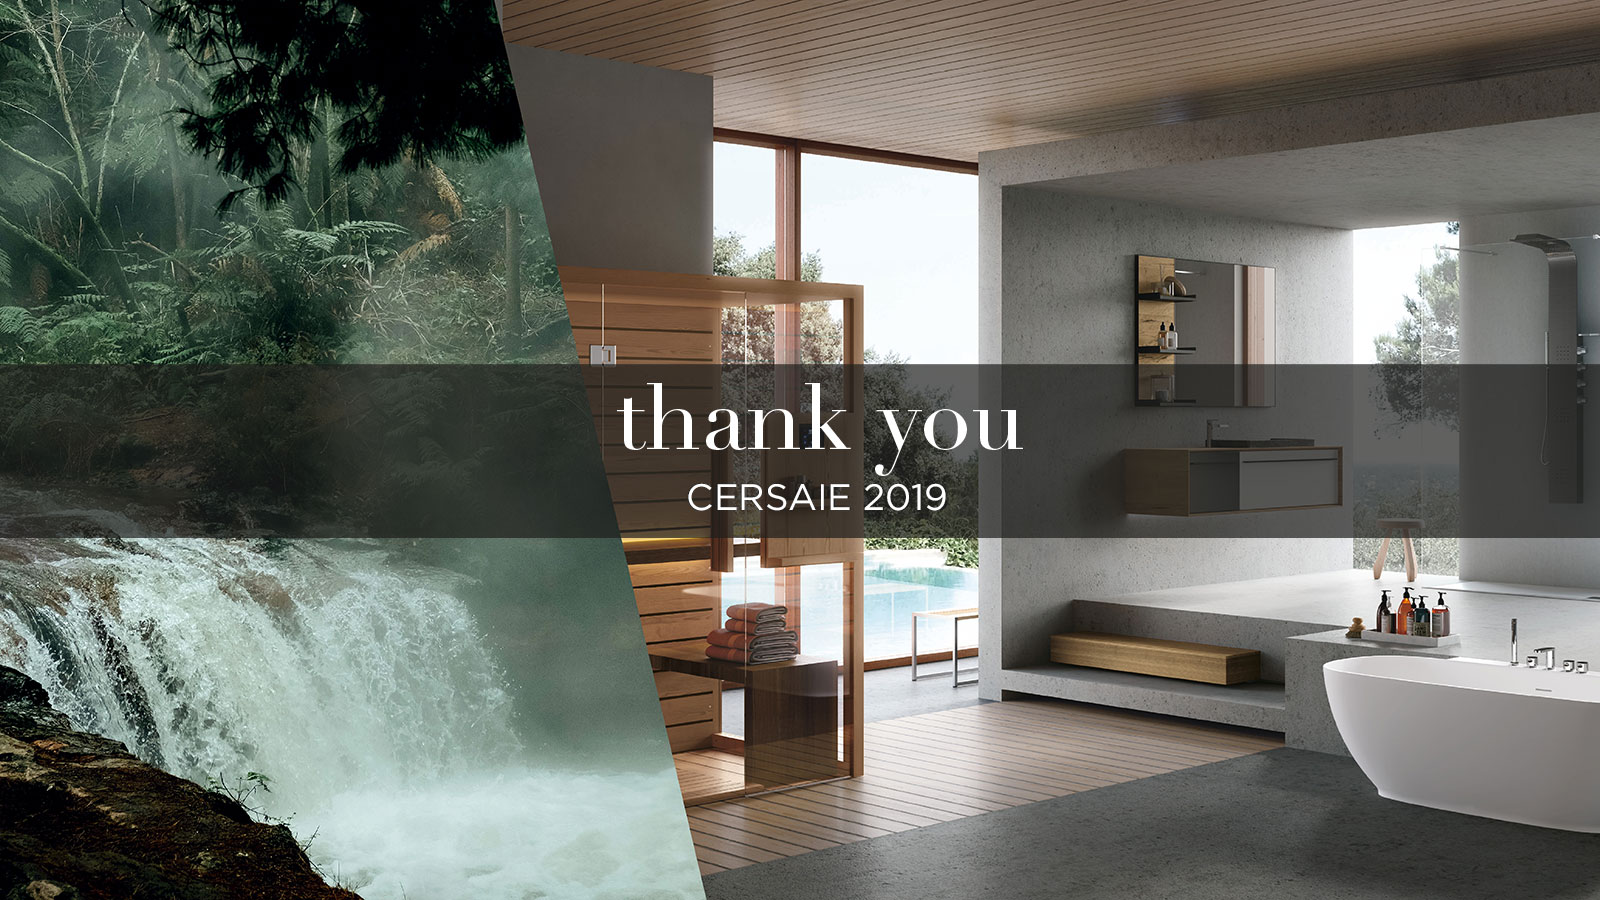 slide_cersaie2019-thanks-w